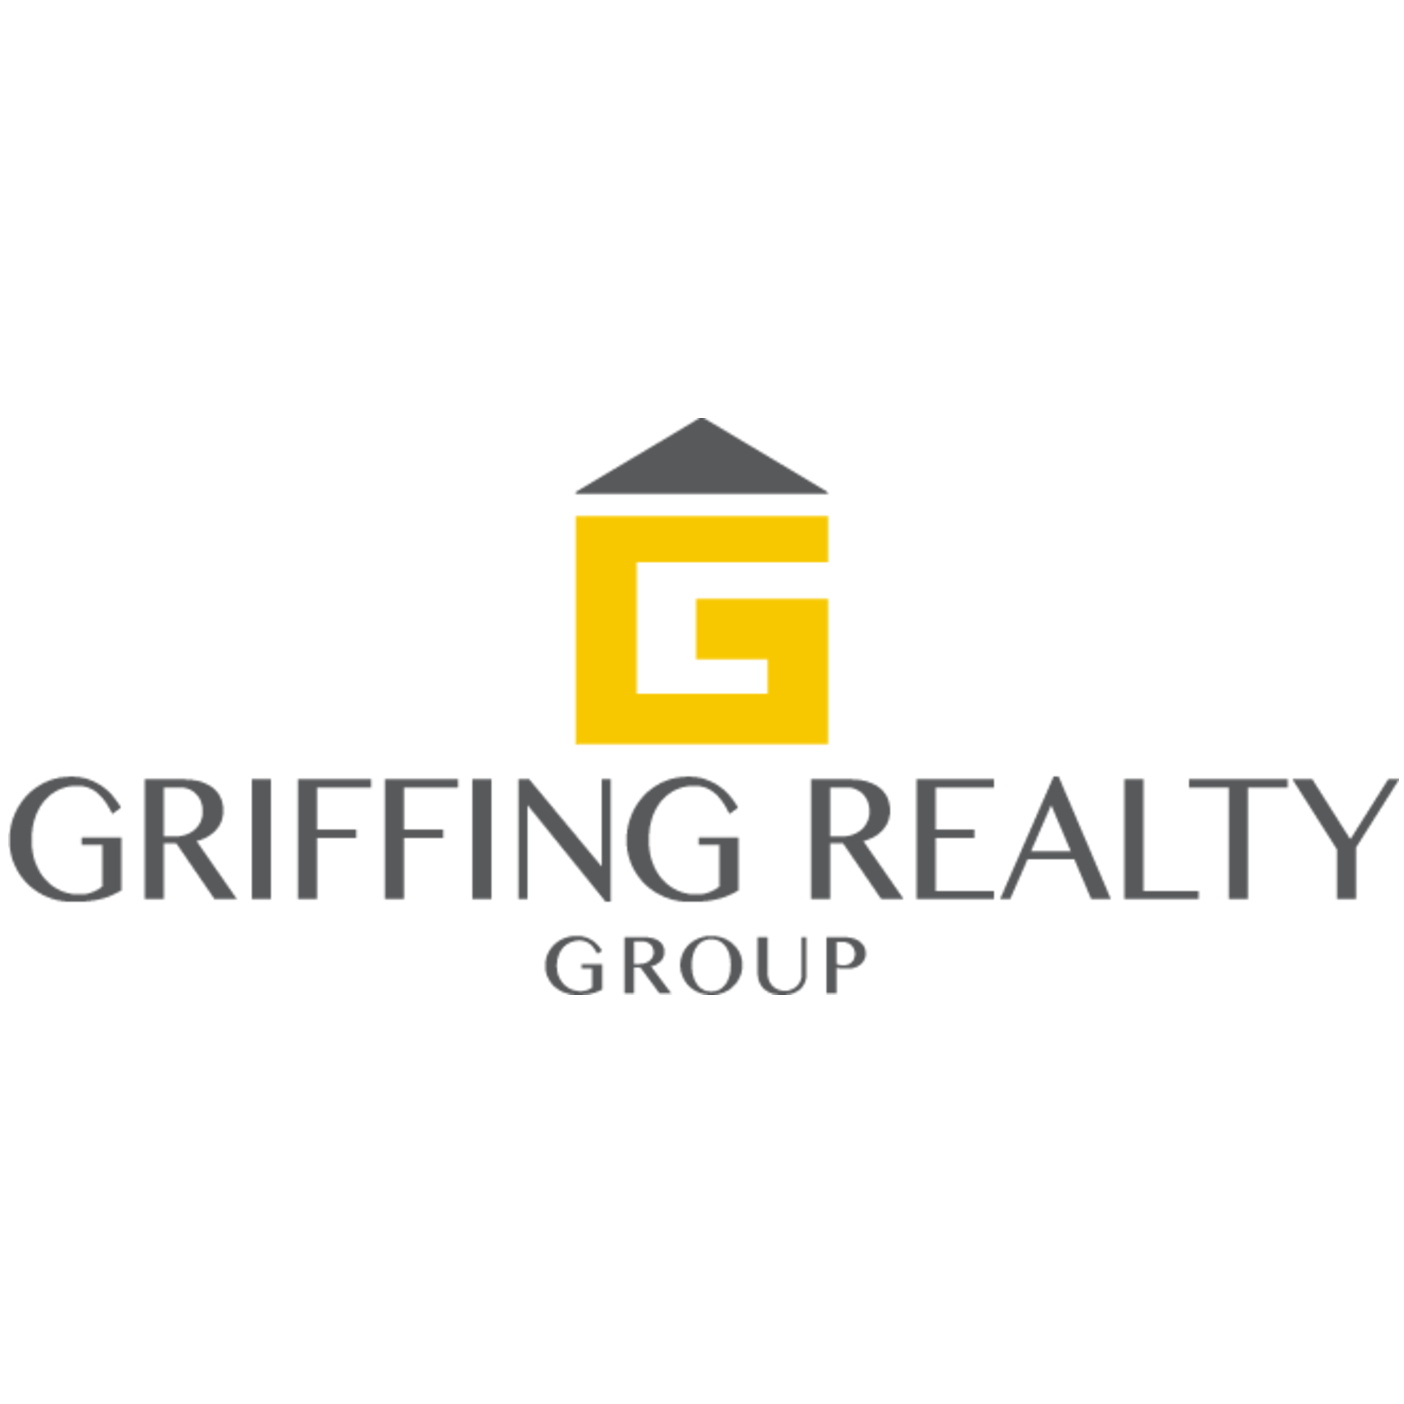 Griffing Realty Group, LLC